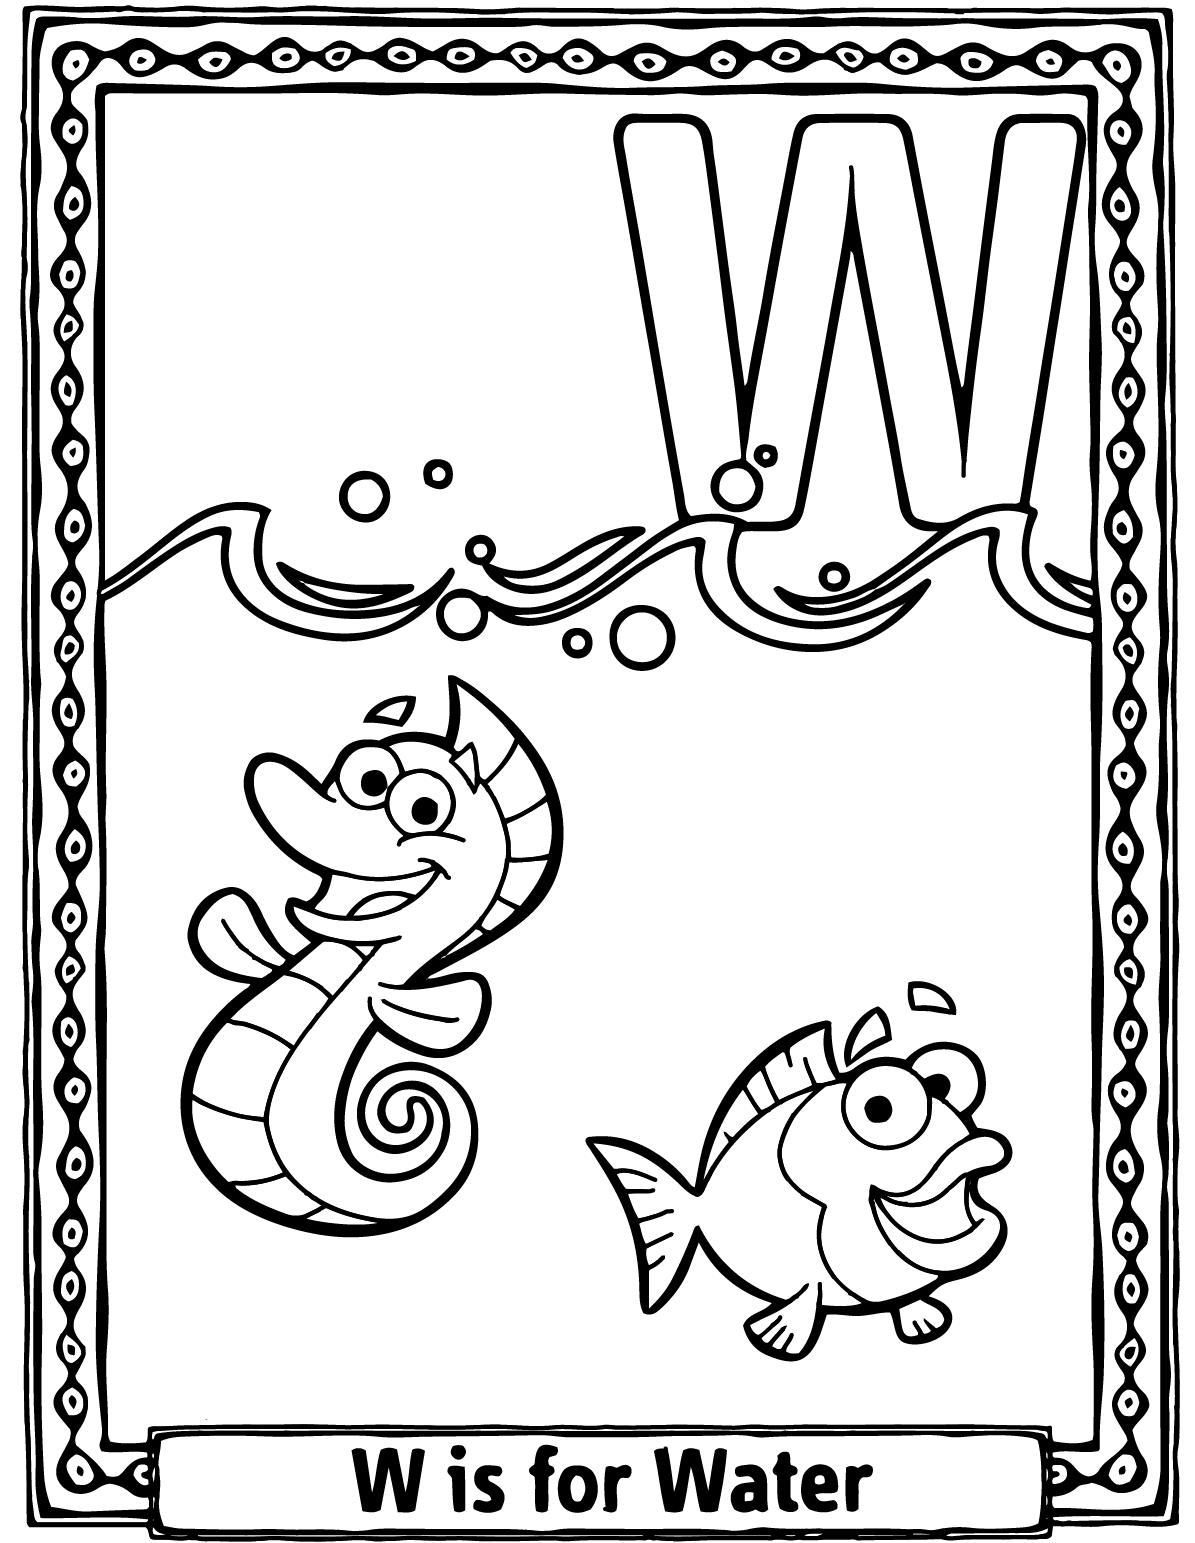 abc colouring sheets free printable abc coloring pages for kids colouring sheets abc